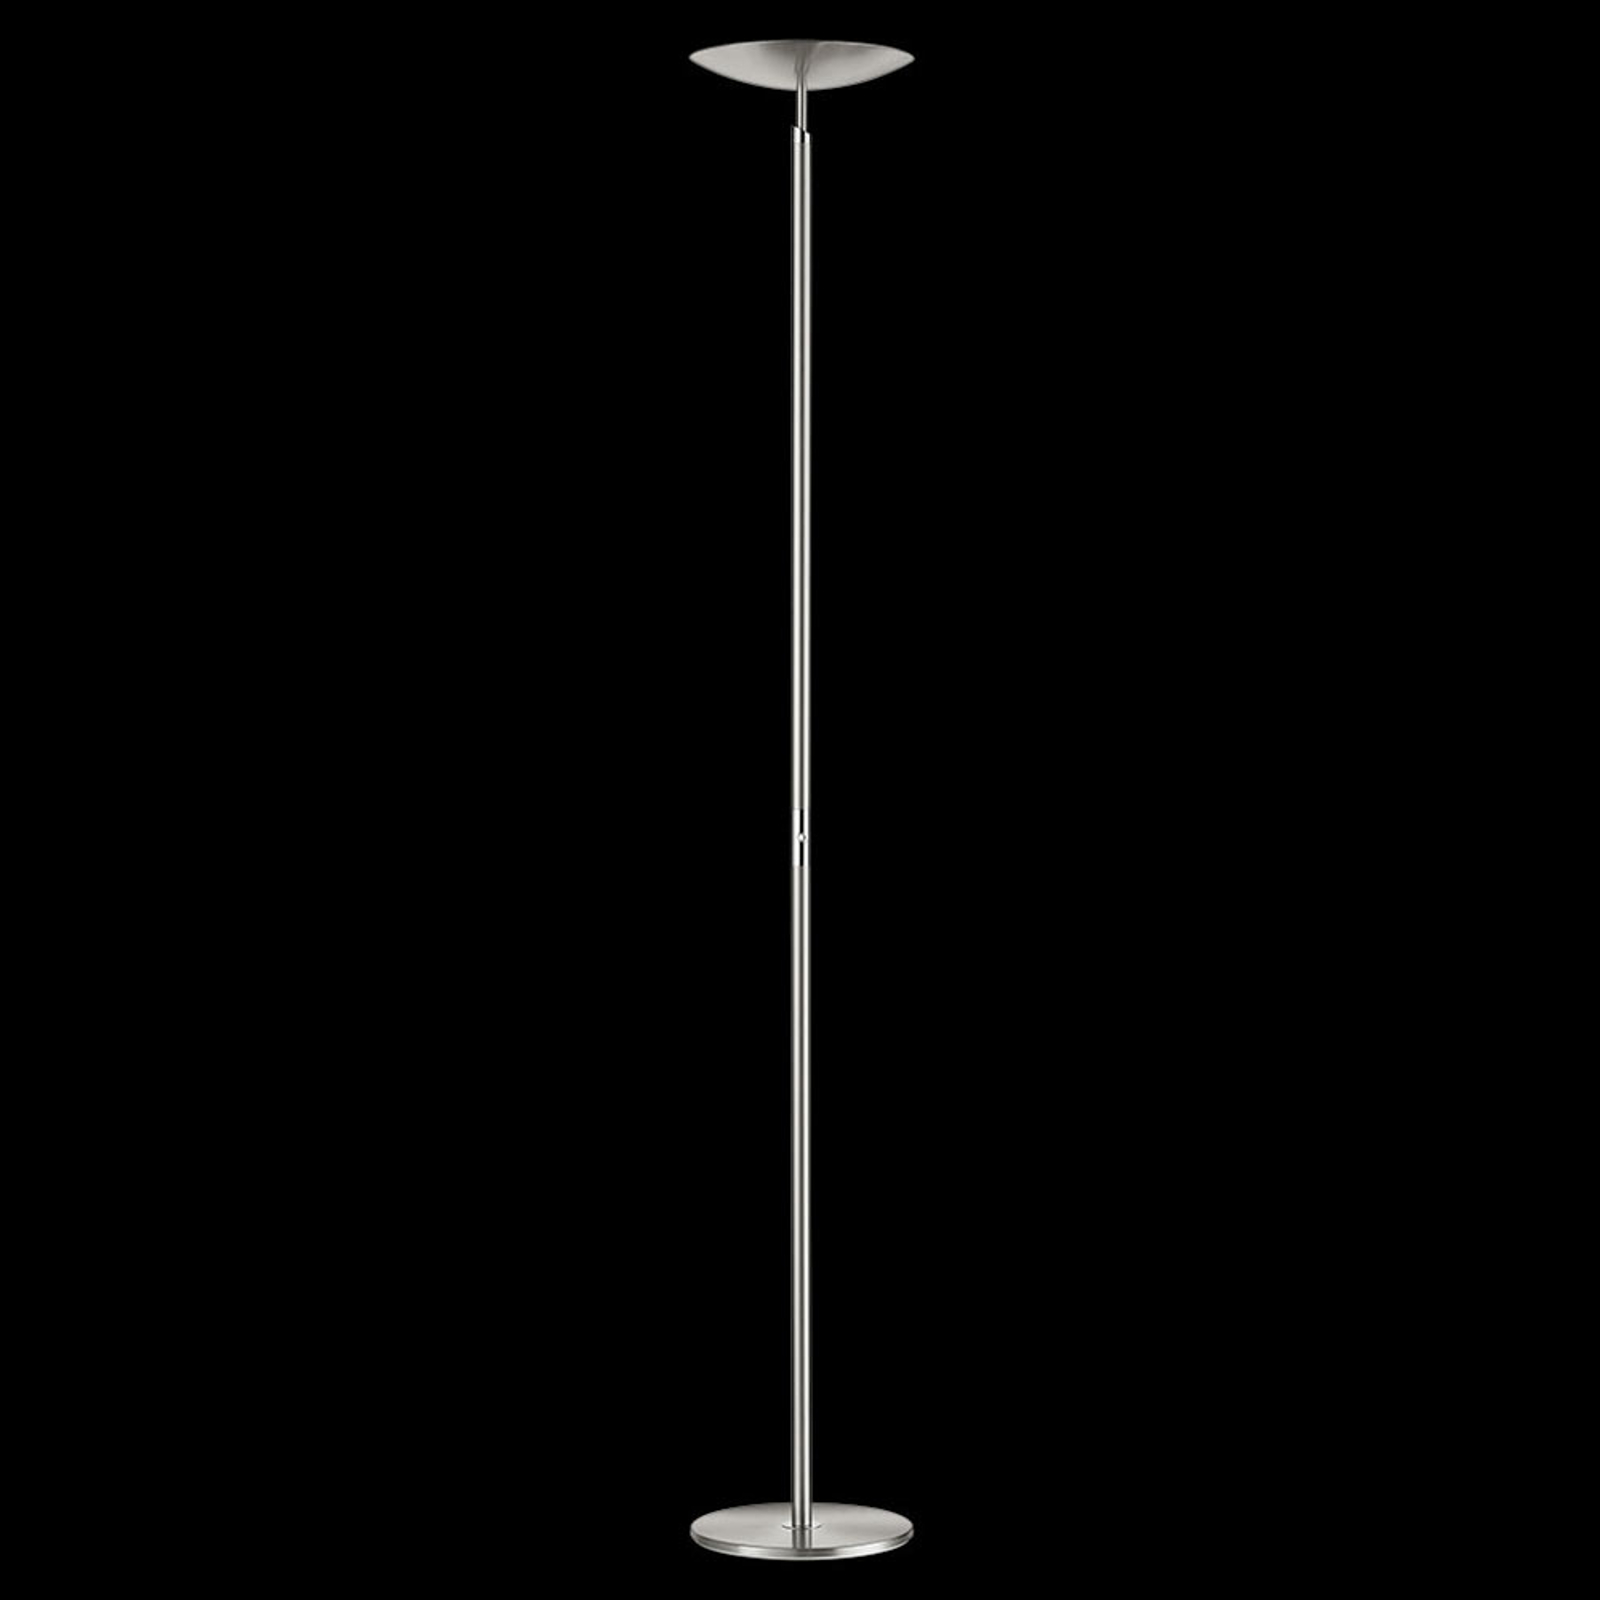 Lampadaire à éclairage indirect LED Nikolei